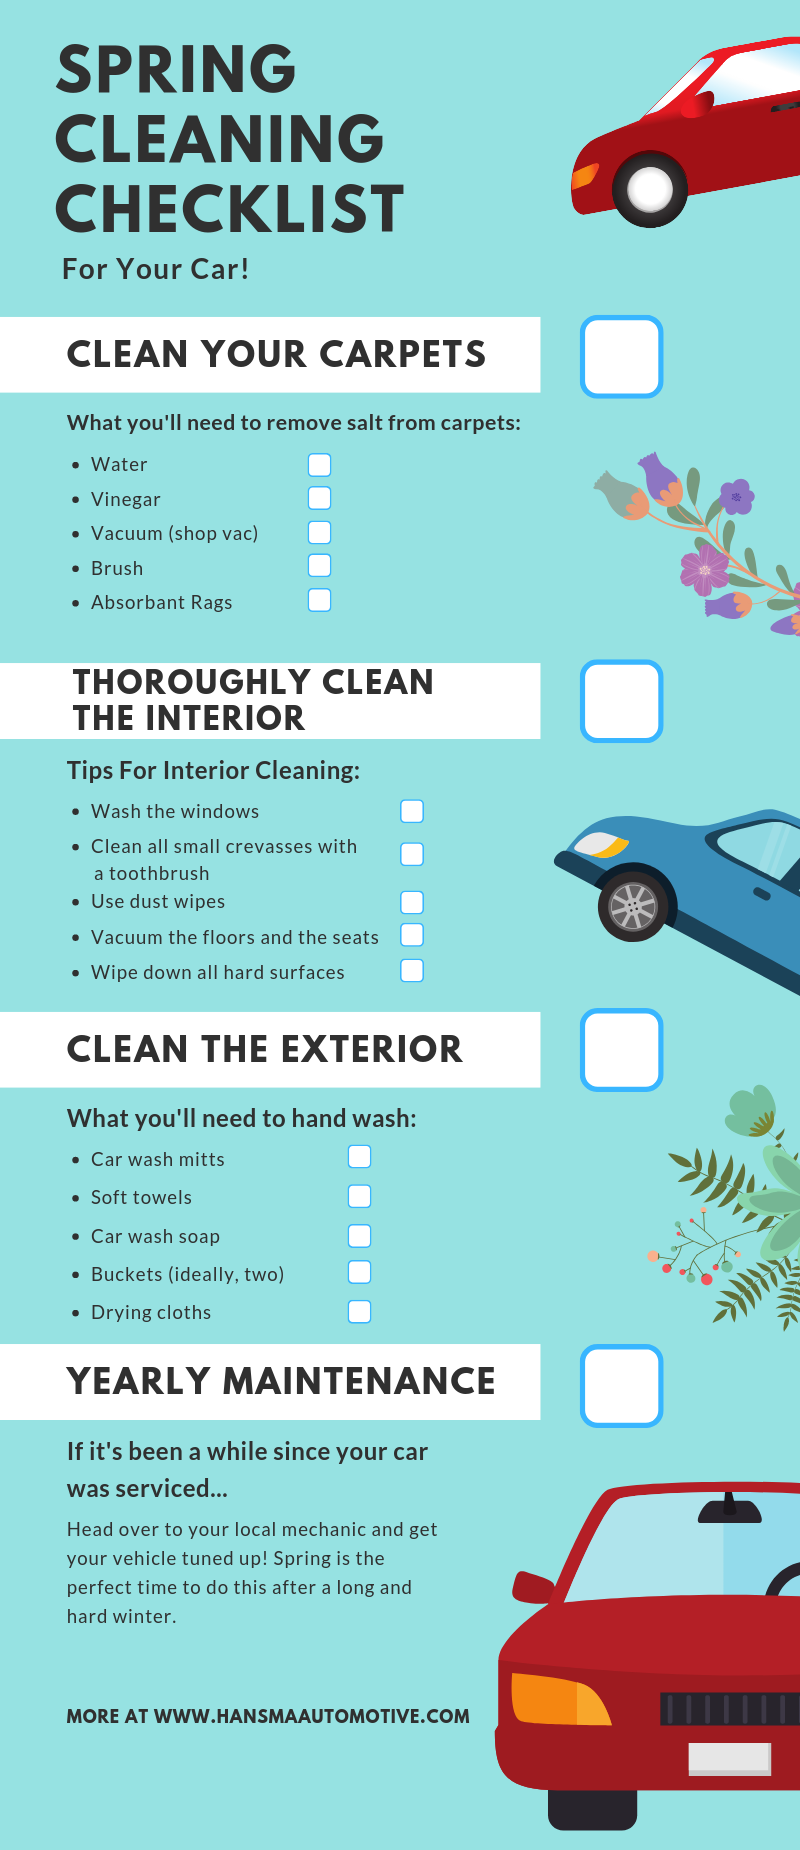 Spring Cleaning Checklist For Your Car - FREE Downloadable PDF